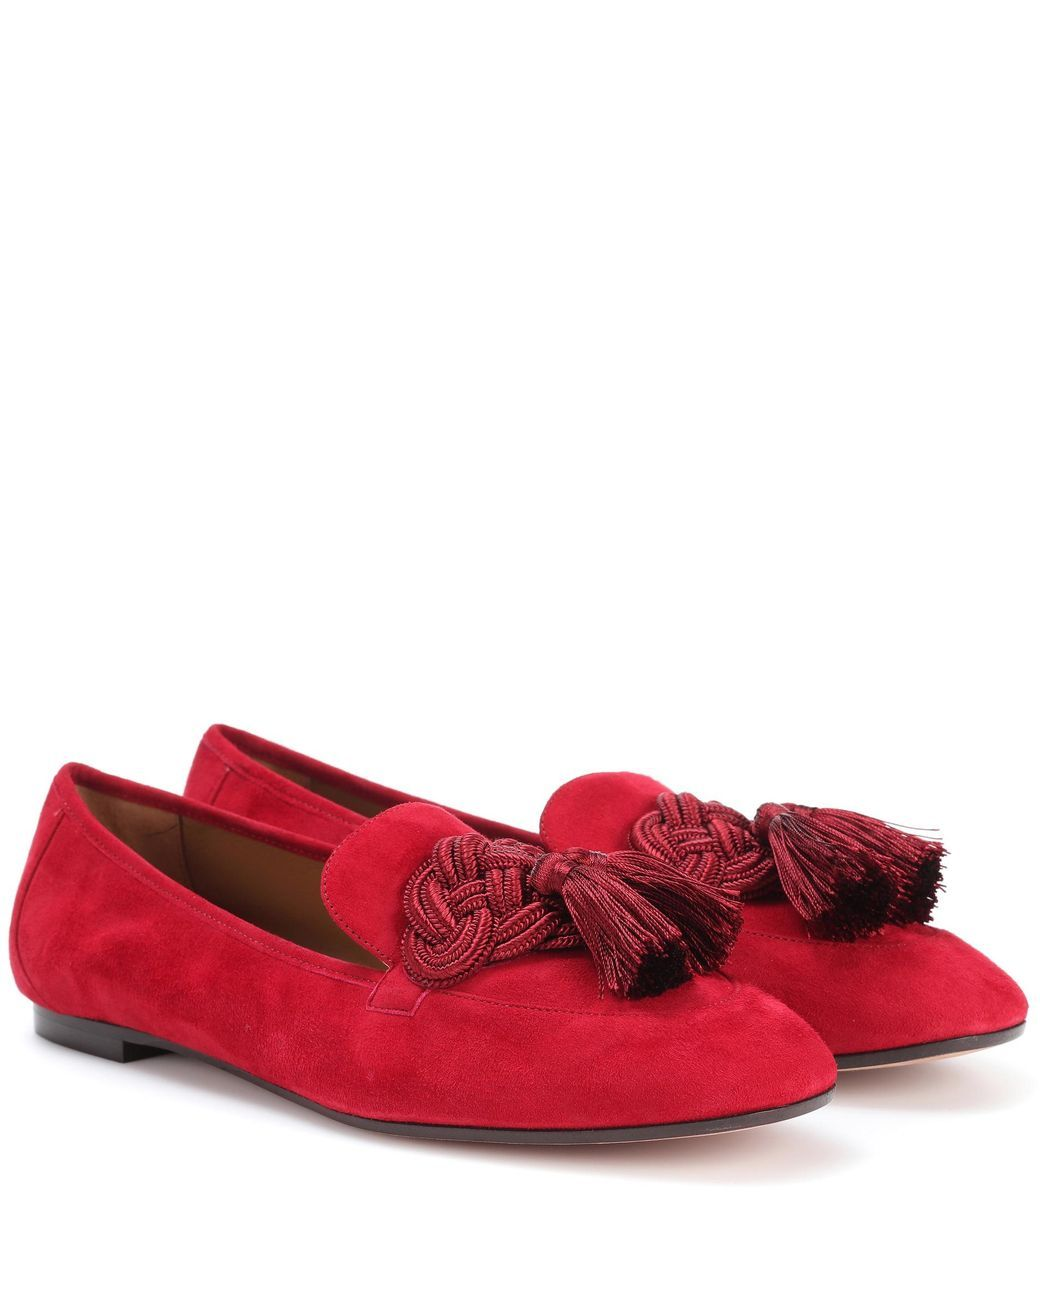 fc23928af Women's Red Embellished Suede Loafers | Loafers | Loafers, Suede ...